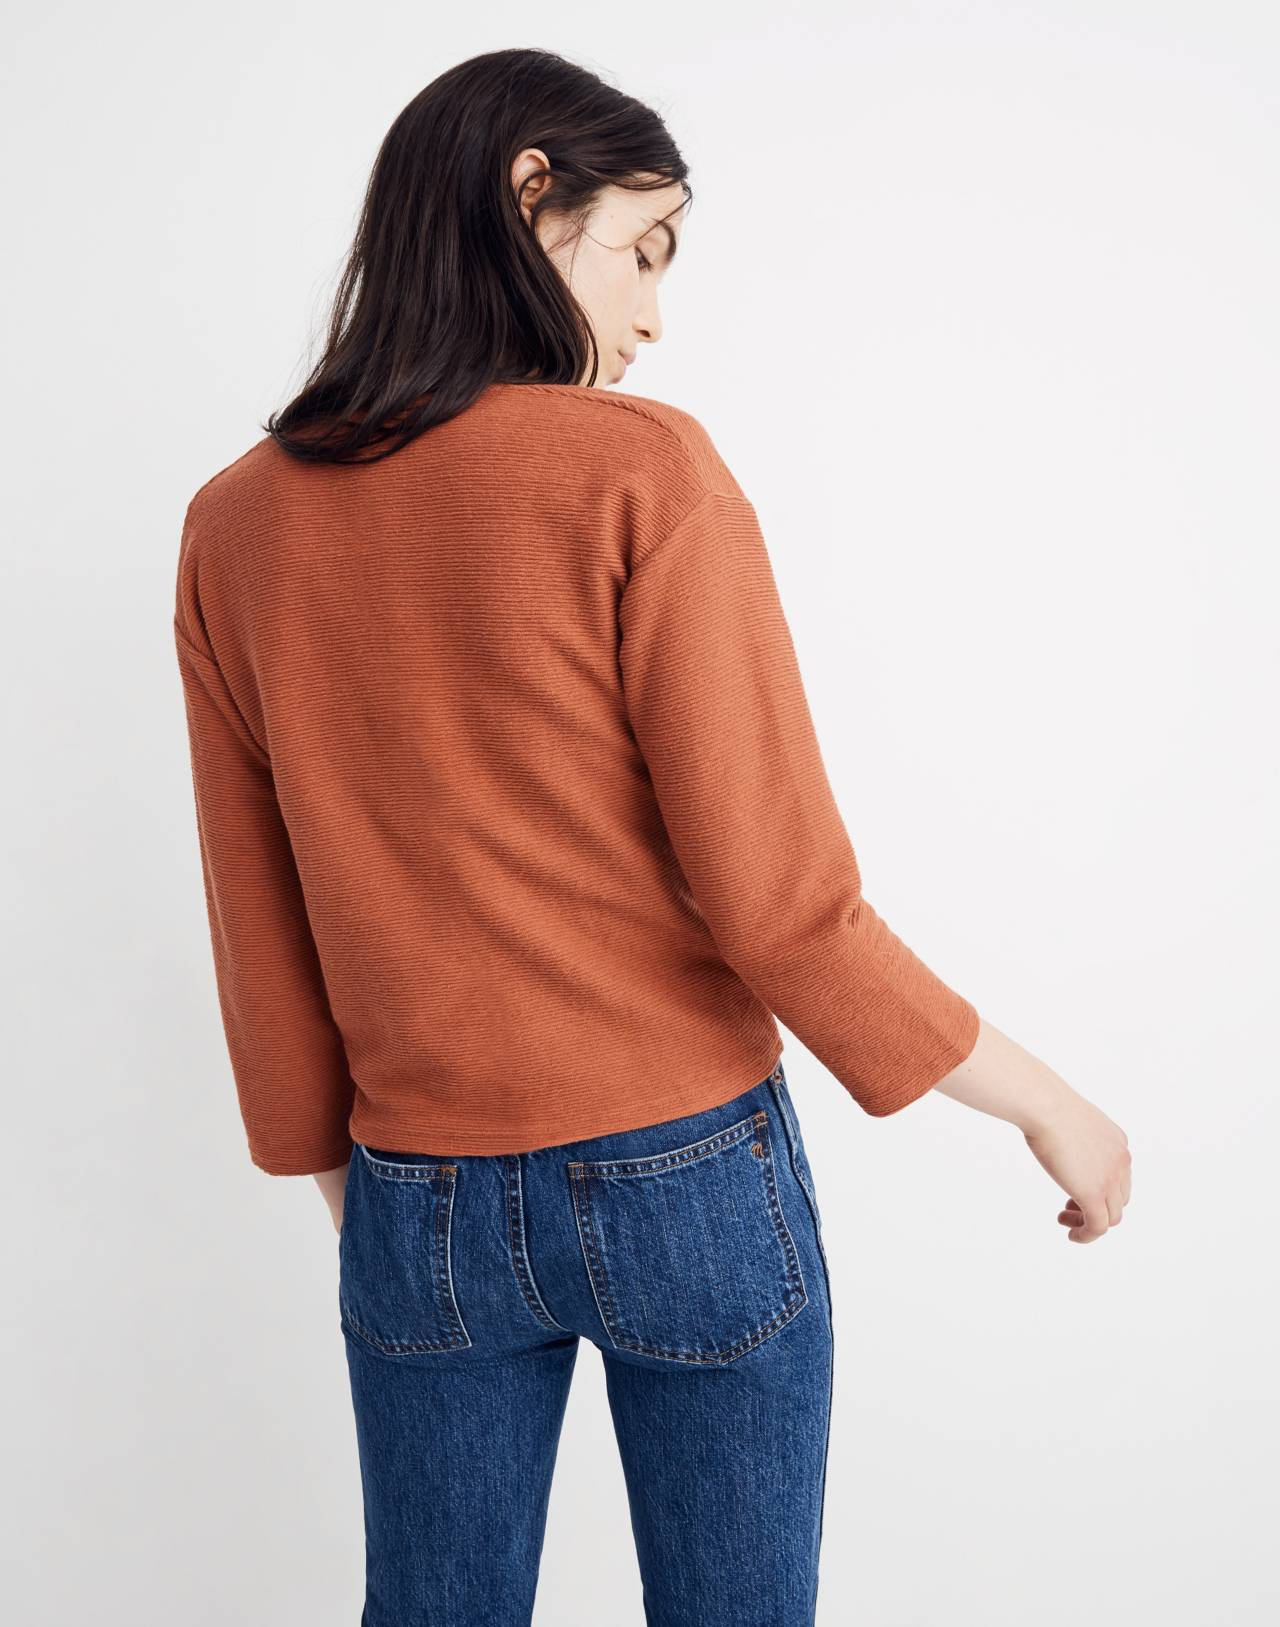 Texture & Thread Long-Sleeve Tie-Front Top in afterglow red image 3